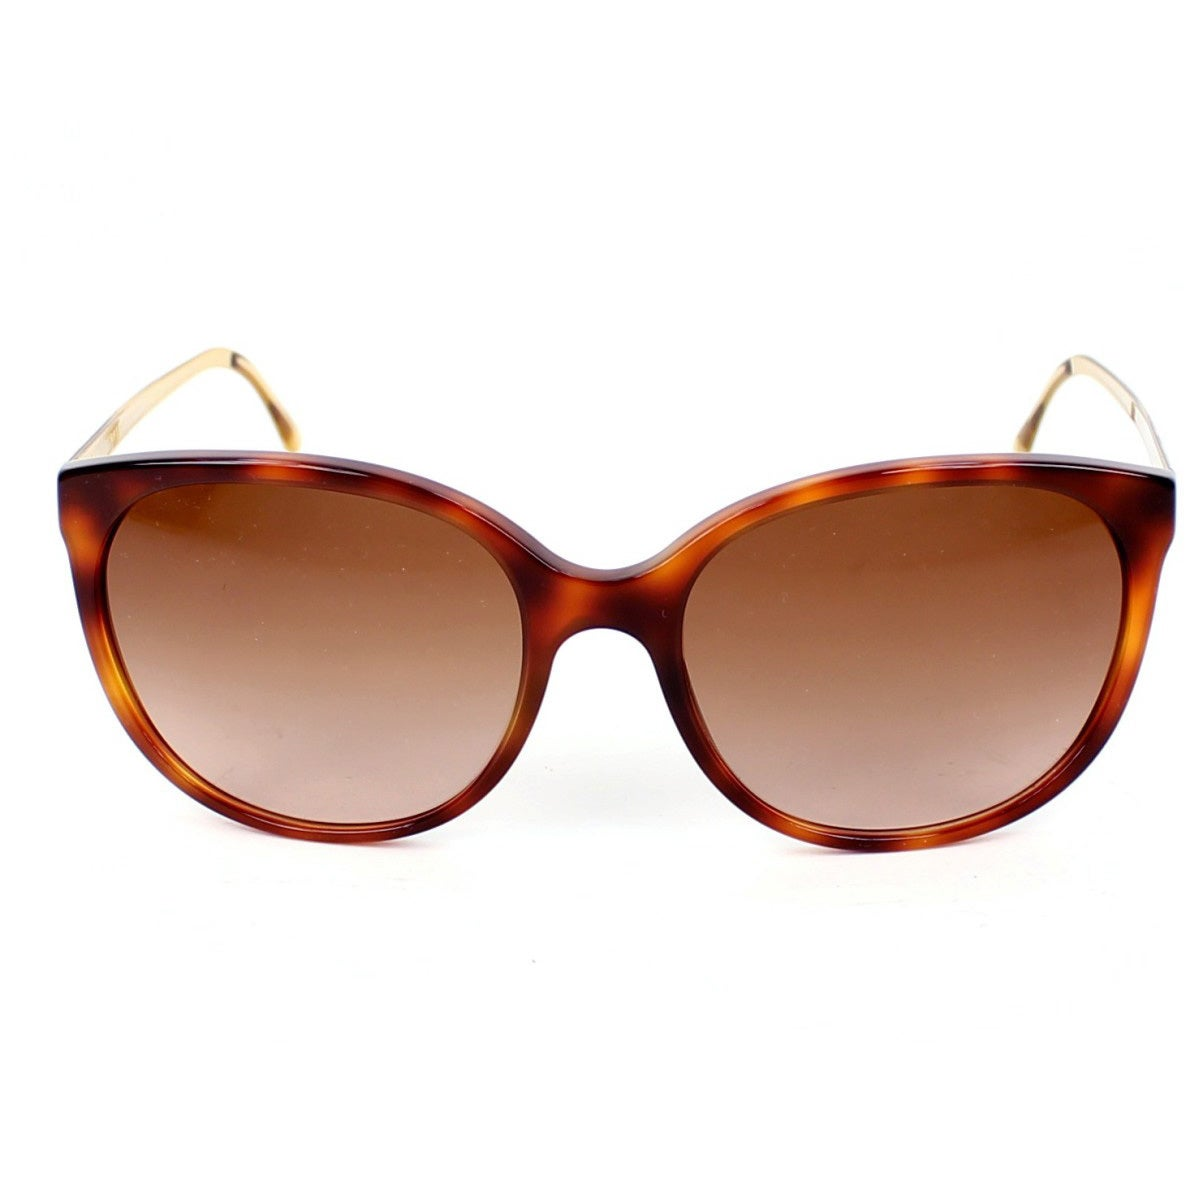 e8f342ac8665 Shop Burberry BE4146 Women's 340713 Havana Plastic Sunglasses - Free  Shipping Today - Overstock - 10006488